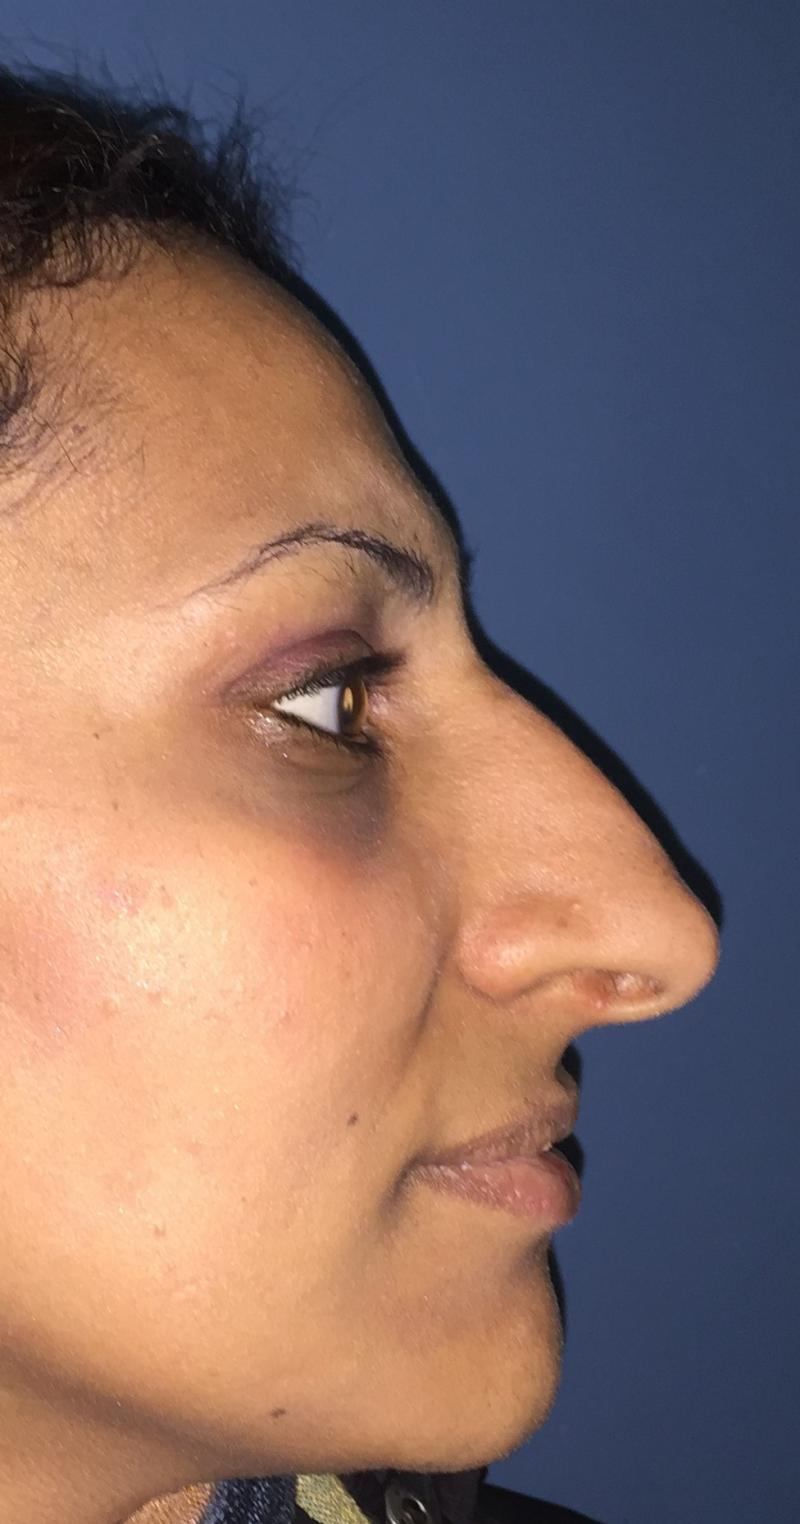 Nose Job, Rhinoplasty, Nasal Hump, Big tip, Best Plastic Surgeon, Deviated nose